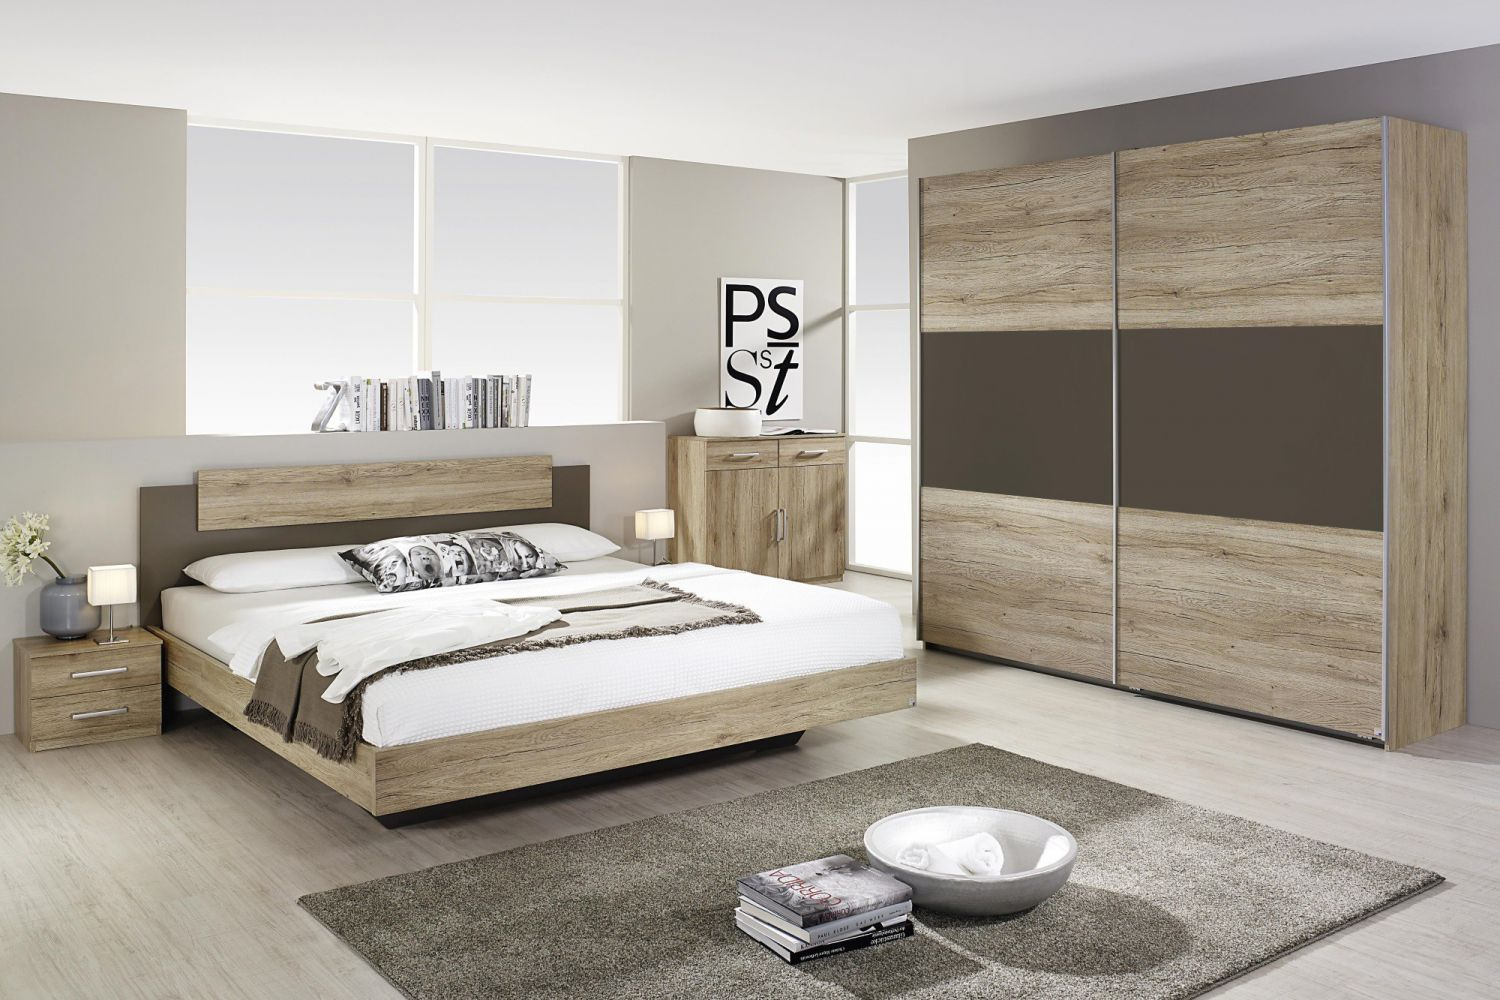 des meubles de qualit reconnue mobilier de france meuble et d coration marseille mobilier. Black Bedroom Furniture Sets. Home Design Ideas